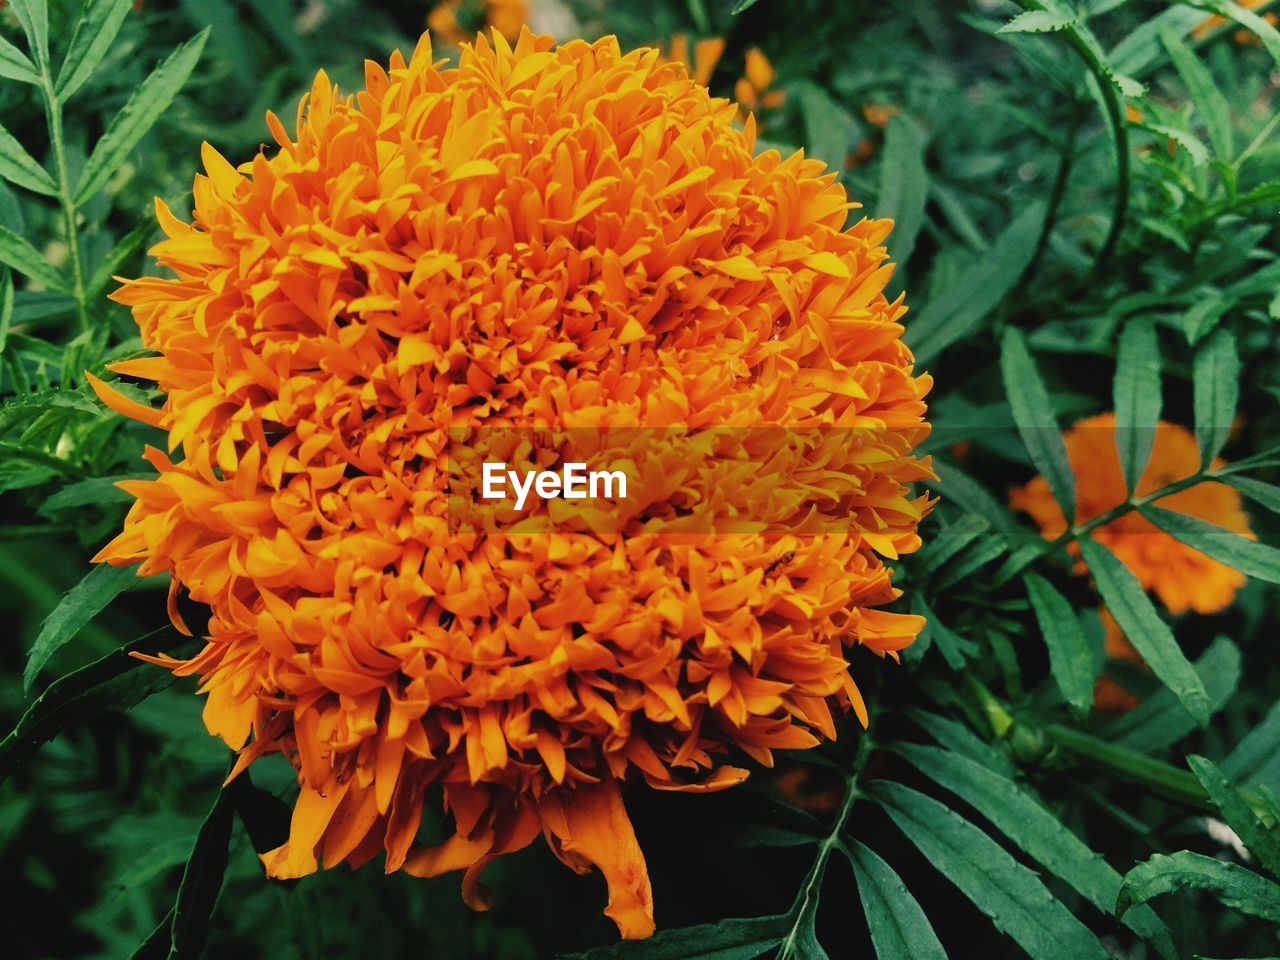 flower, beauty in nature, freshness, growth, fragility, petal, nature, orange color, flower head, close-up, plant, blooming, no people, outdoors, day, marigold